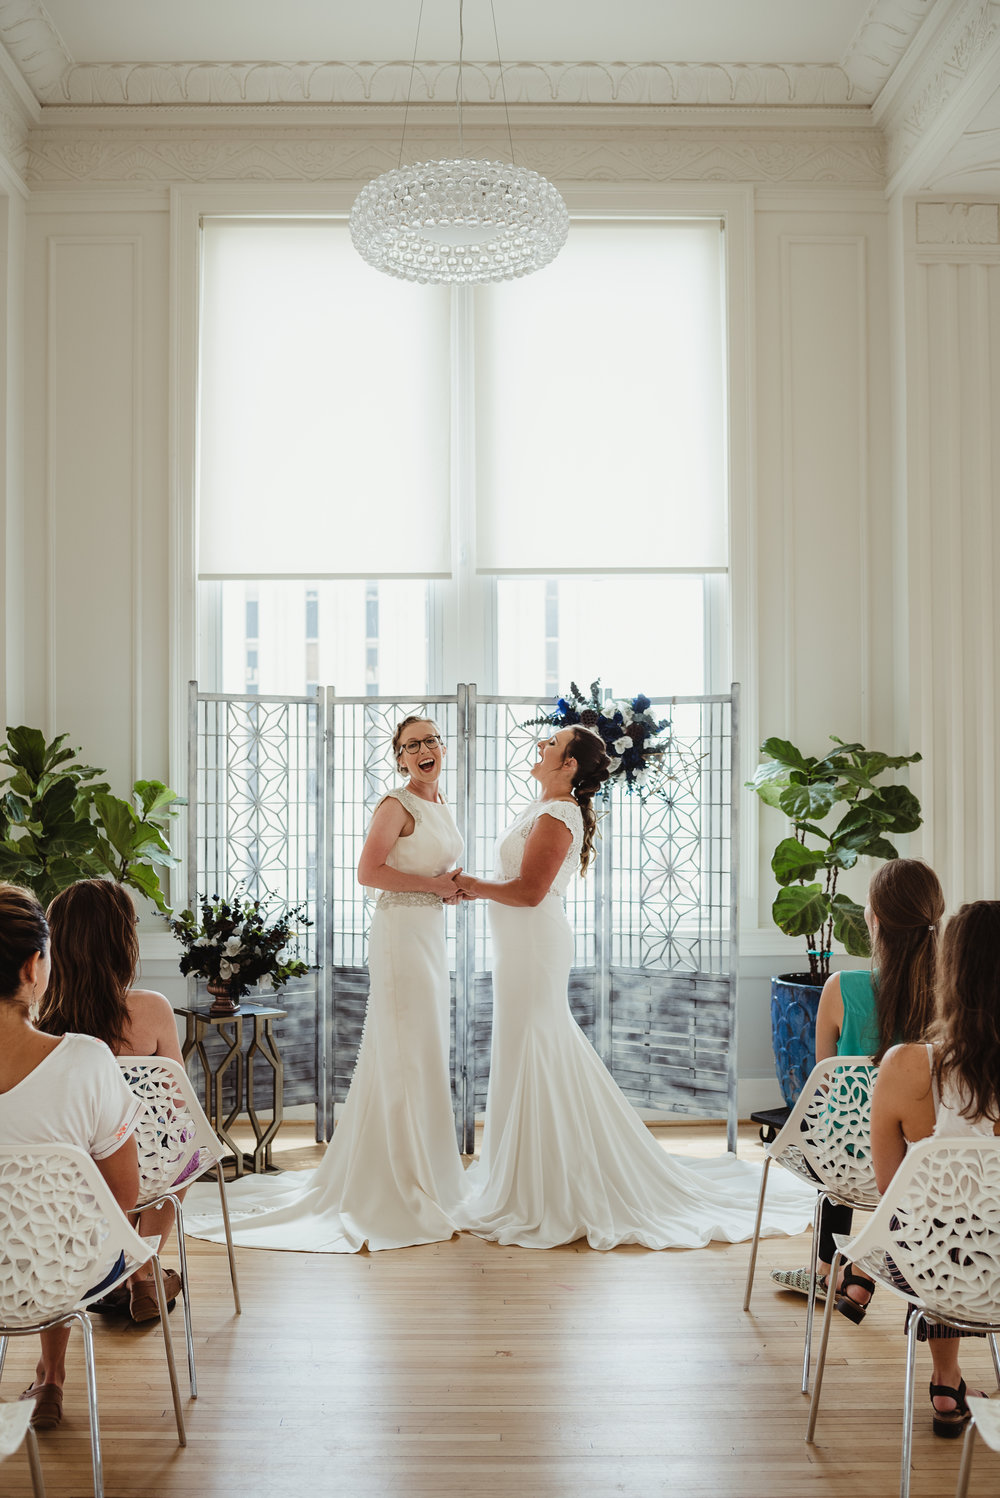 2-Beautiful-Brides-Laughing-Cannon-Room-Rowan-Lane-Events-Rose-Trail-Images.jpg